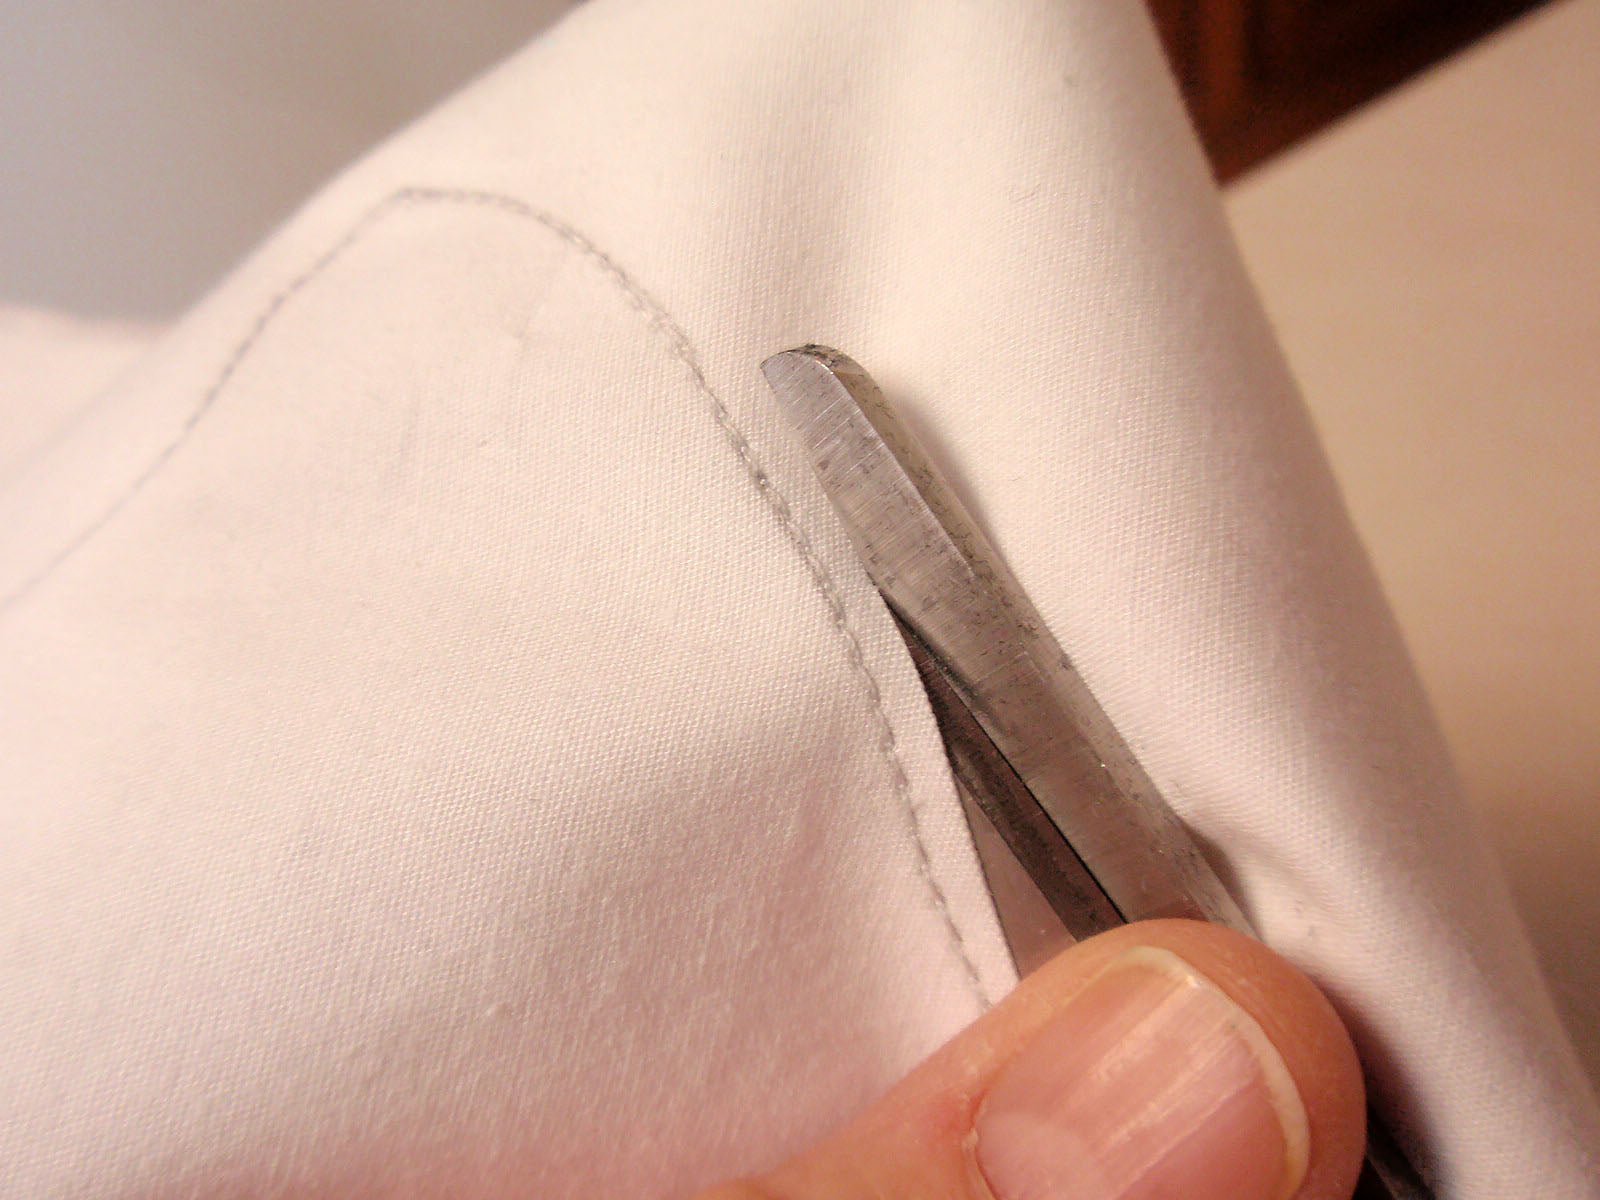 trim near stitched line